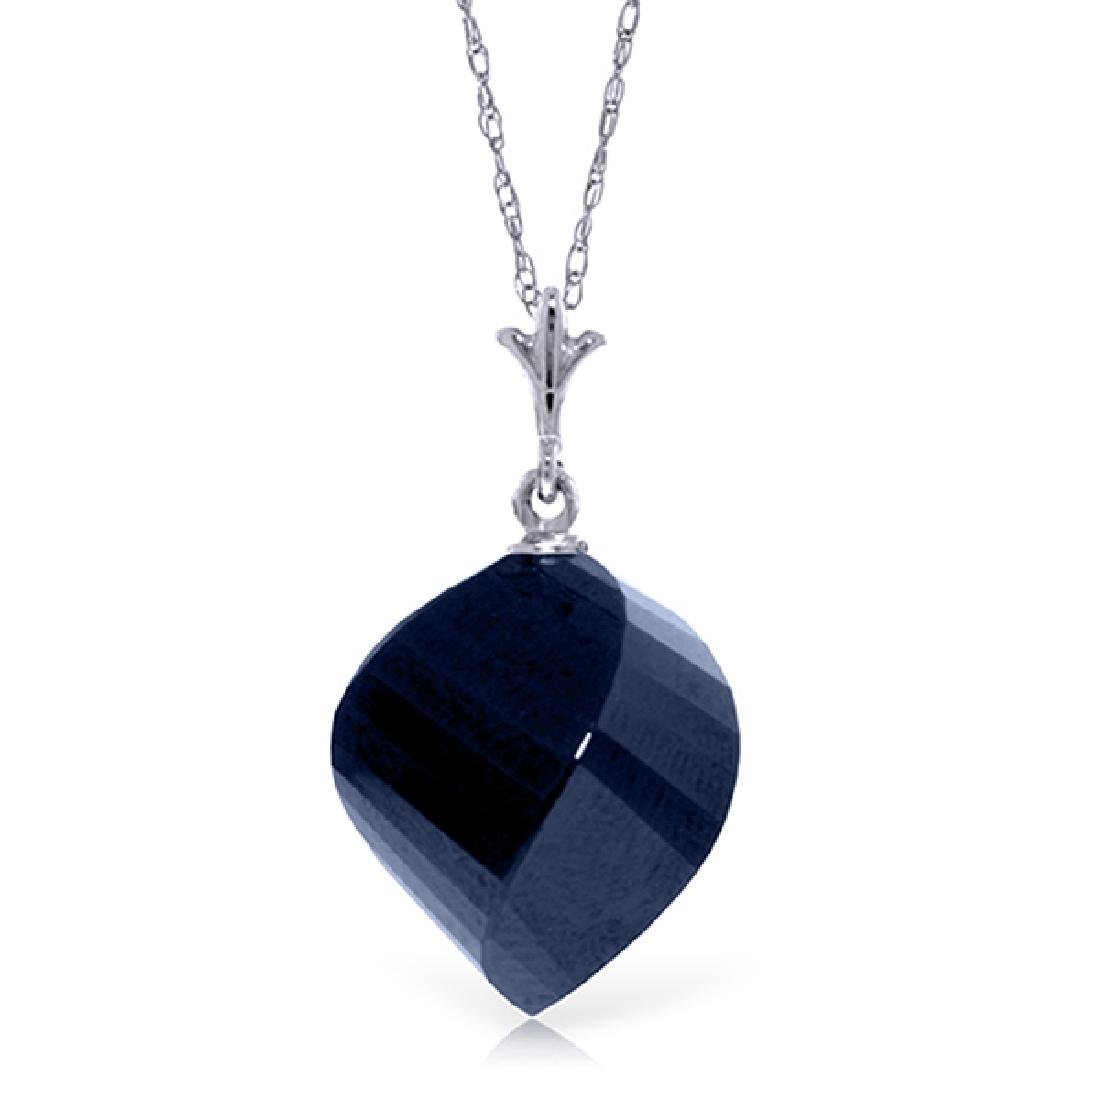 Genuine 15.25 ctw Sapphire Necklace Jewelry 14KT White